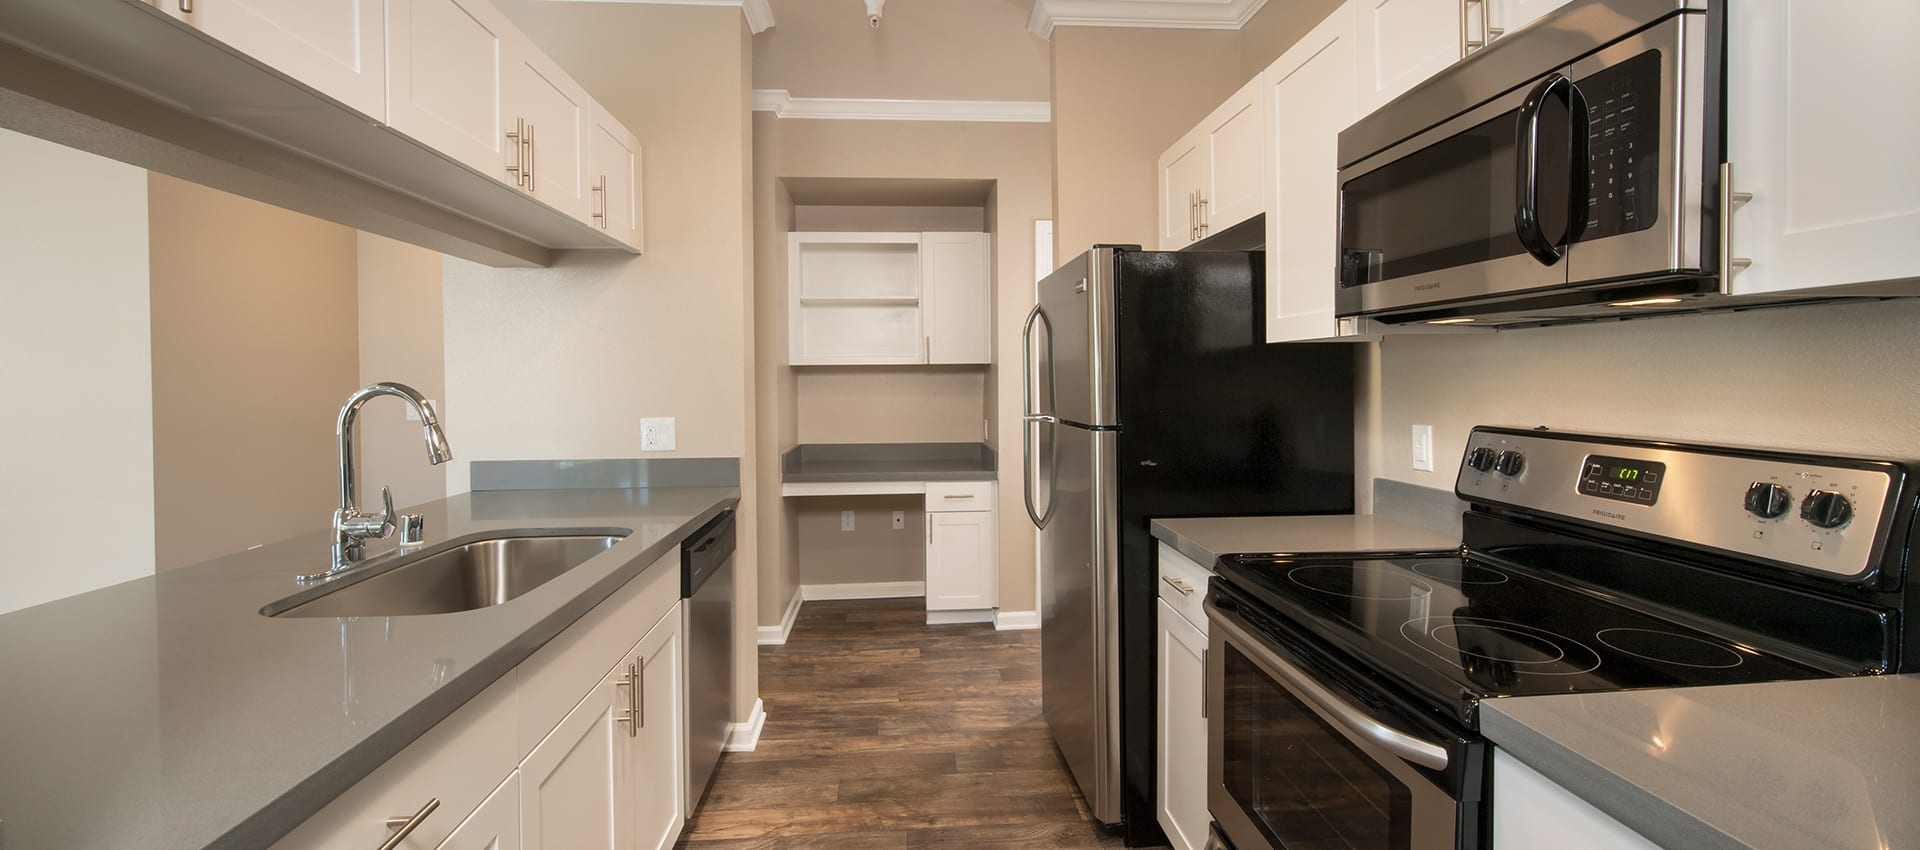 Modern kitchen with stainless-steel appliances at Esplanade Apartment Homes in Riverside, California